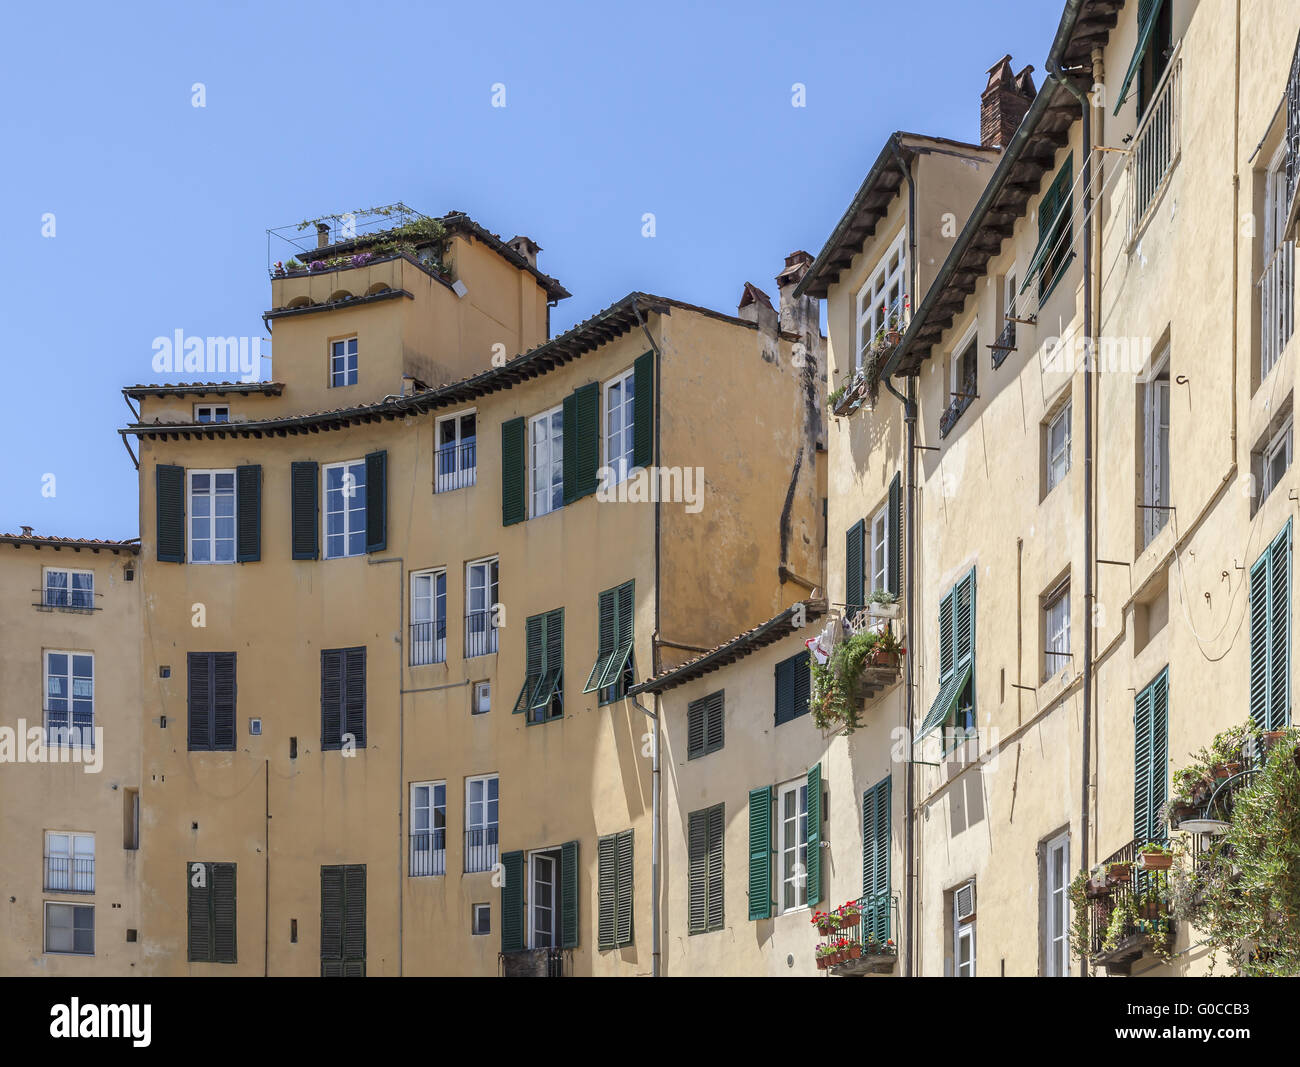 Lucca, Piazza Anfiteatro, a formerly Roman theatre - Stock Image